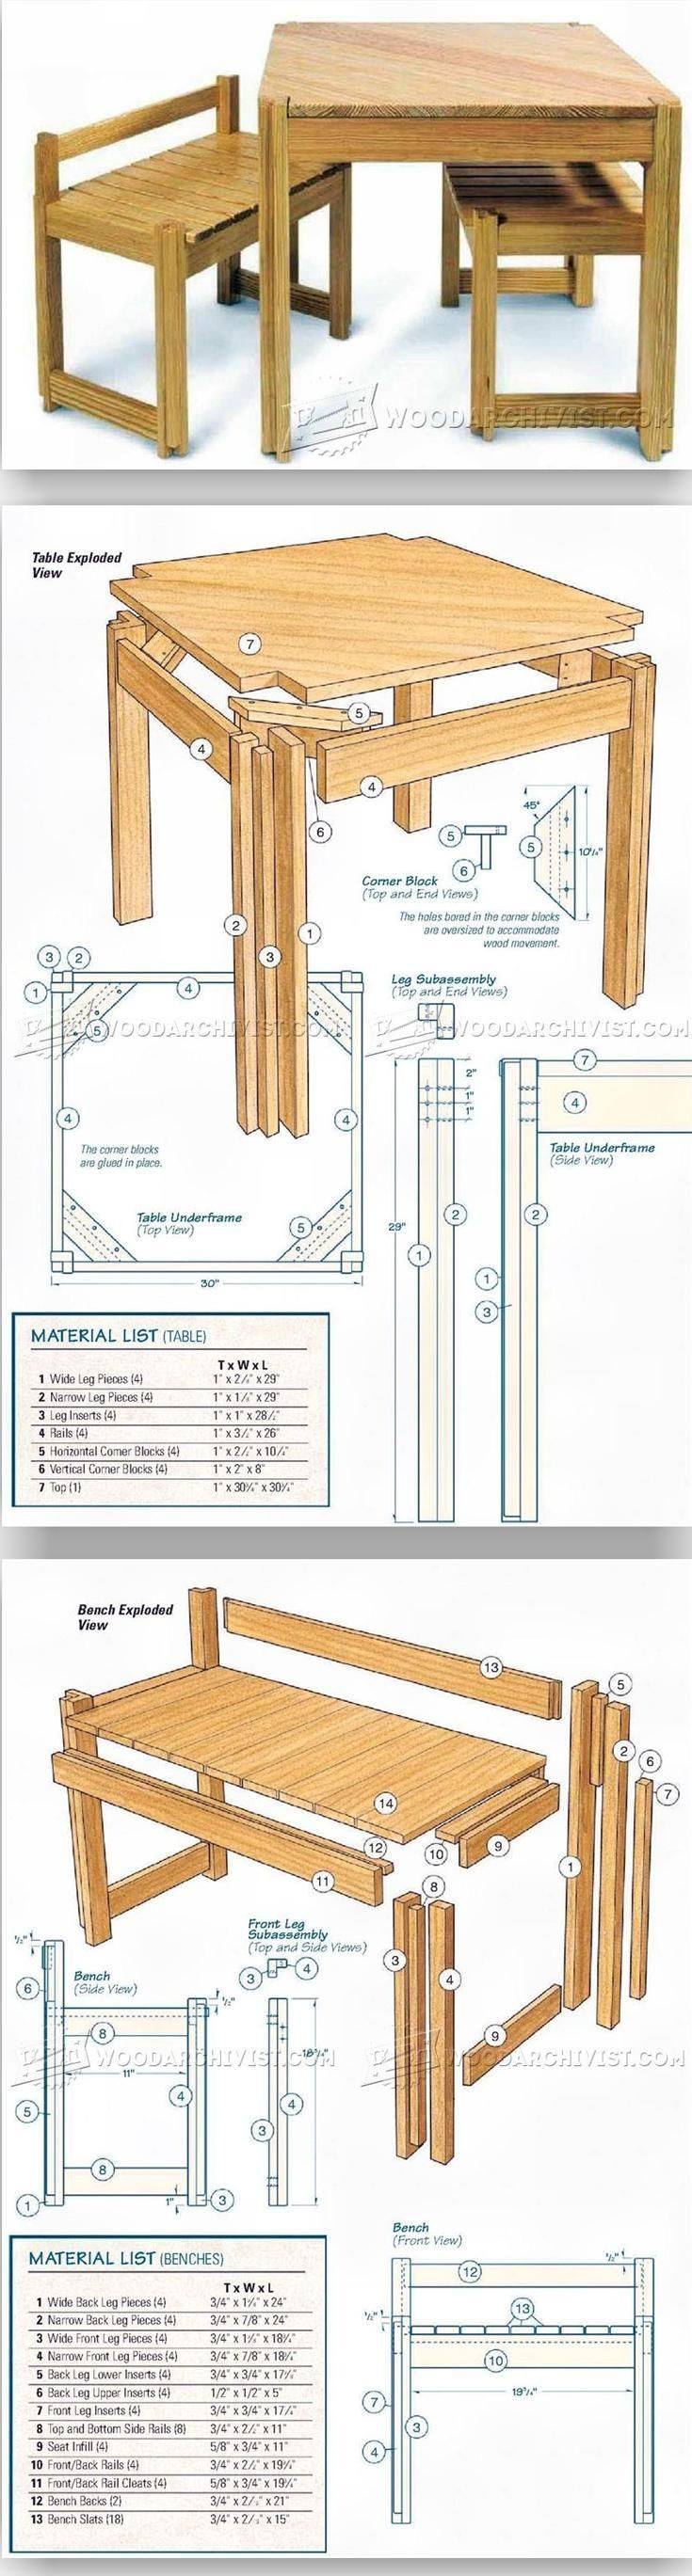 870 Best Images About Woodworking On Pinterest Router